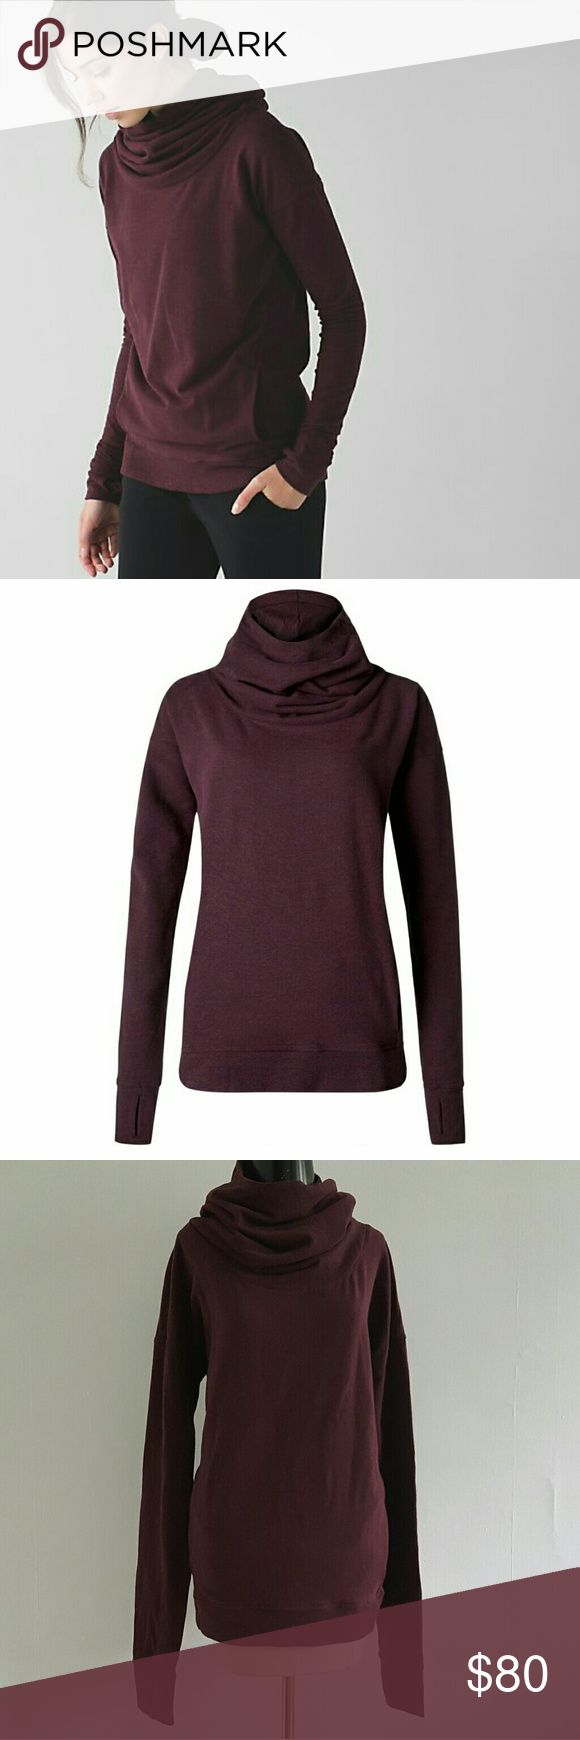 LULULEMON ATHLETICA less stress cowl neck hoodie Beautiful stress less cowl neck hoodie in heathered bordeaux drama.  Extra long sleeves with thumb holes.  In EUC, no flaws to disclose. lululemon athletica Tops Sweatshirts & Hoodies